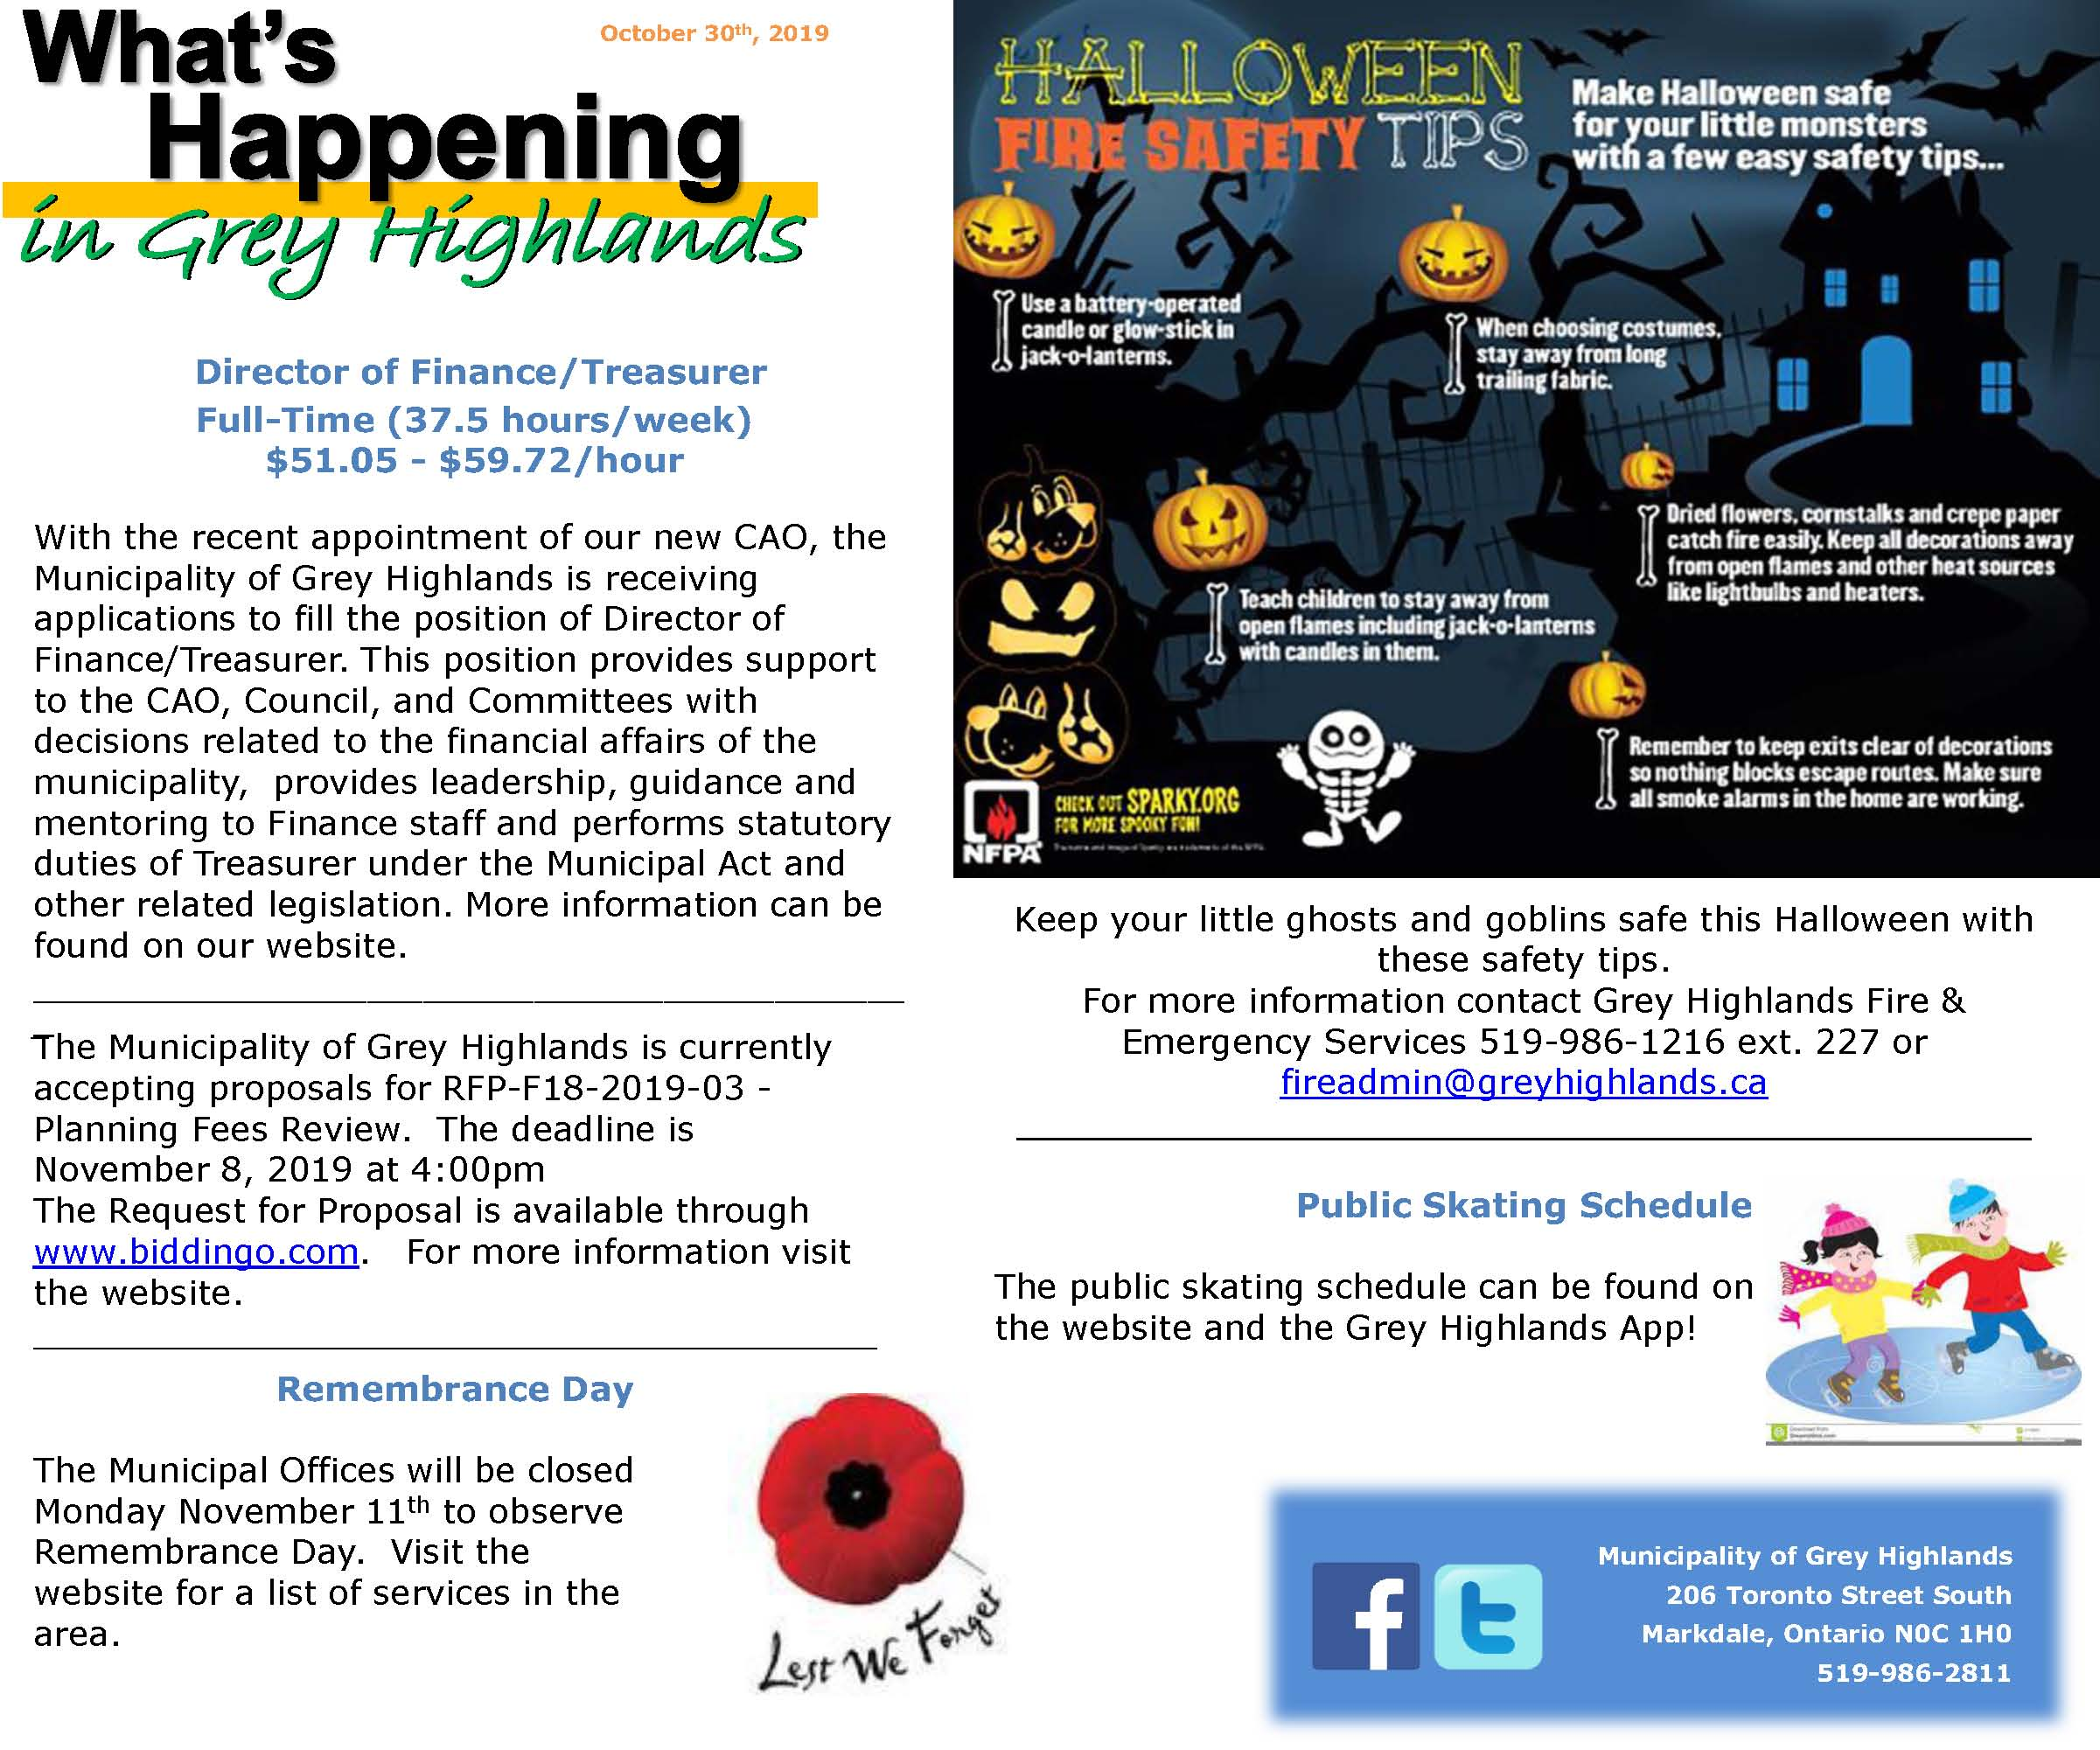 What's Happening this week in Grey Highlands